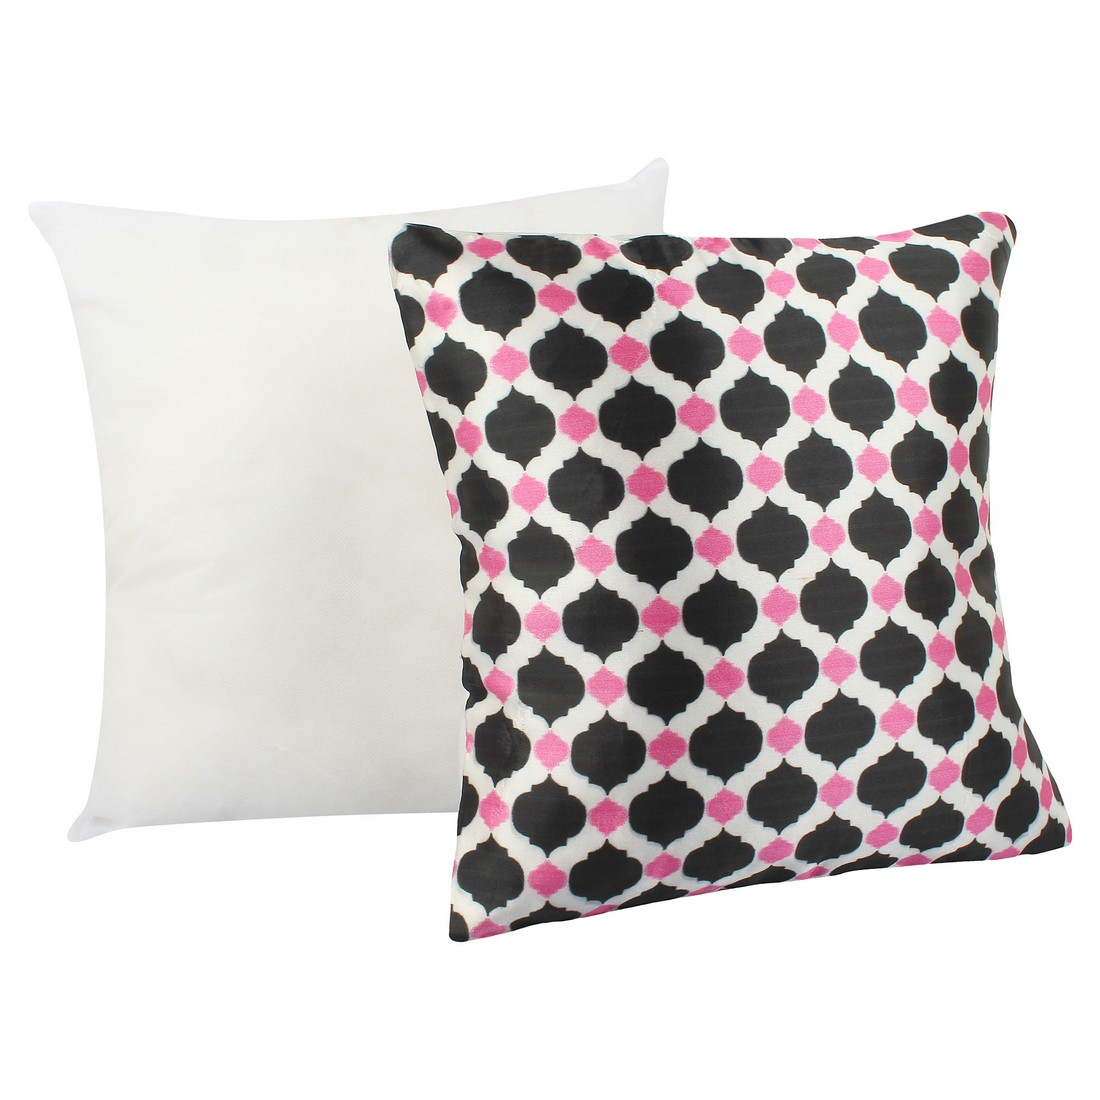 "Sattva Premium Digital Printed Cushion Cover CU09 With Filler Multicolor - Size 12""x12"""